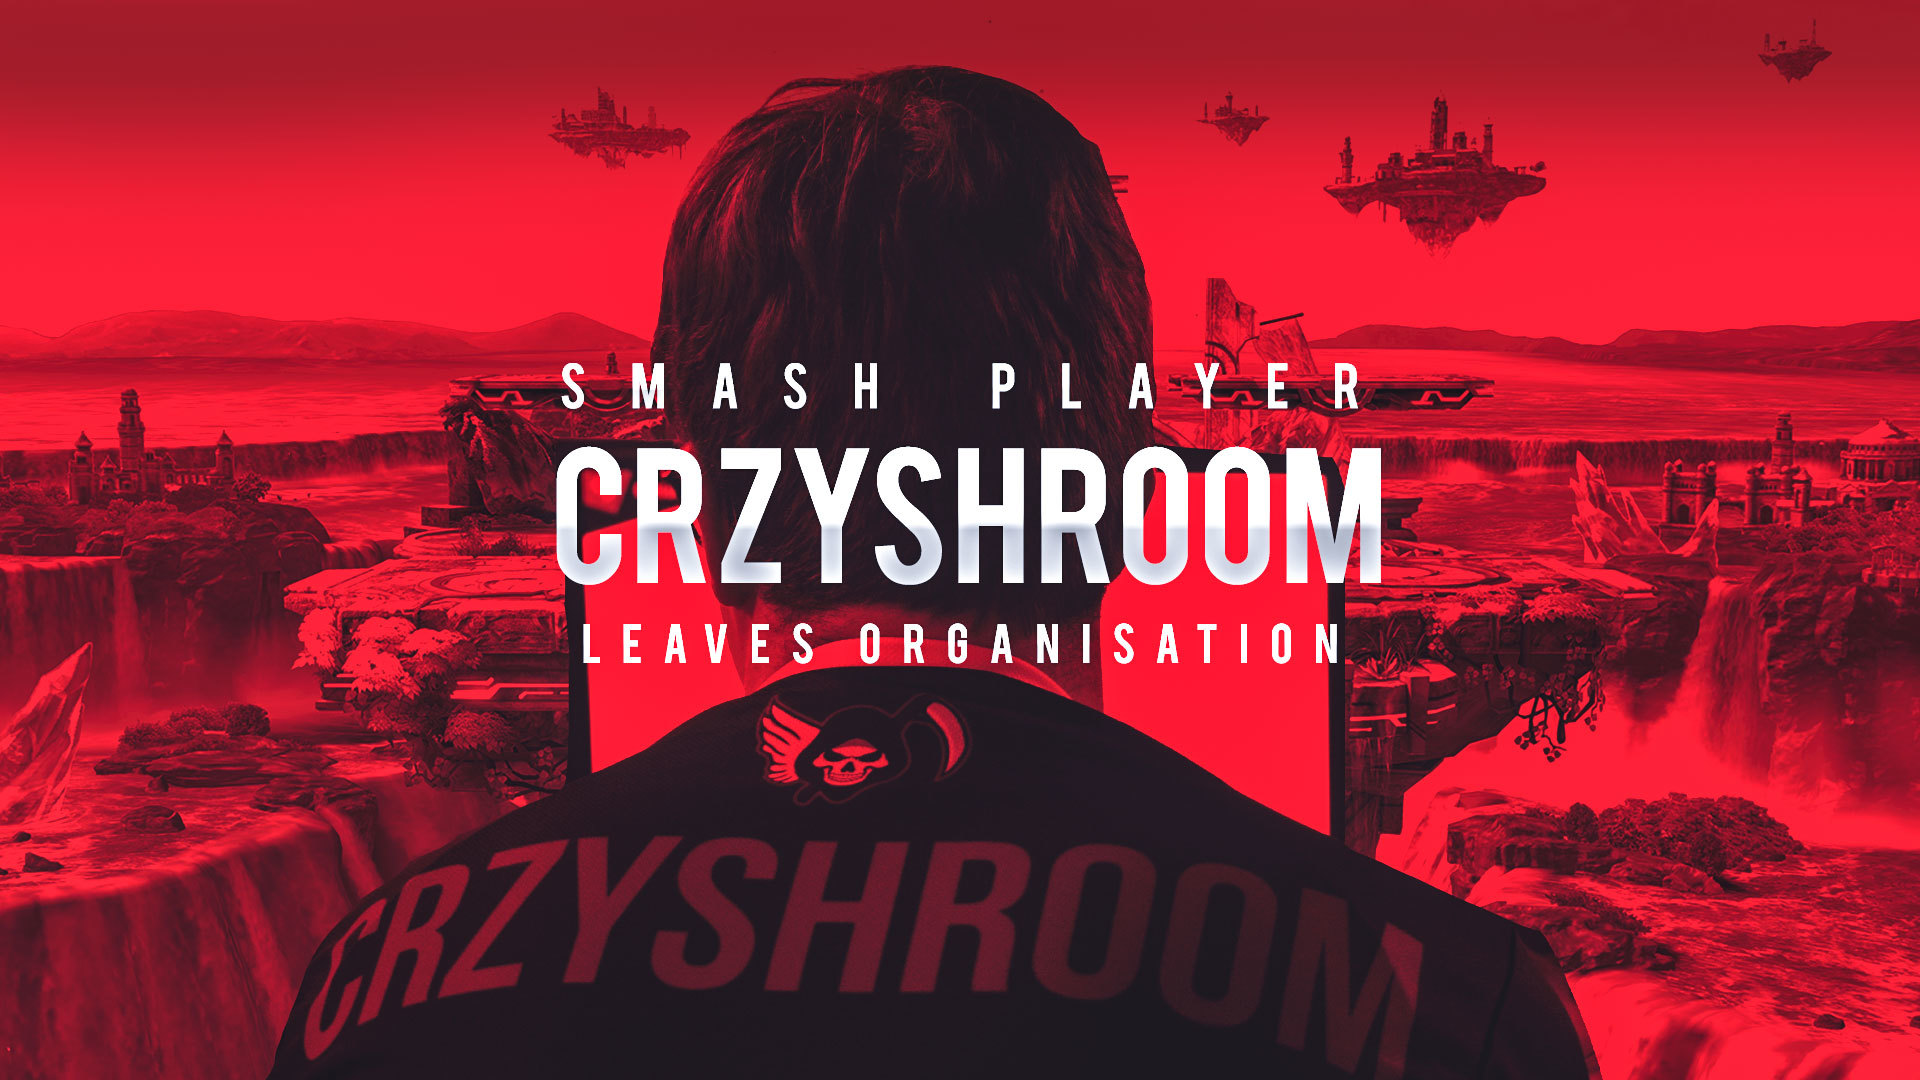 Content page images smash leaving crzyshroom thumbnail